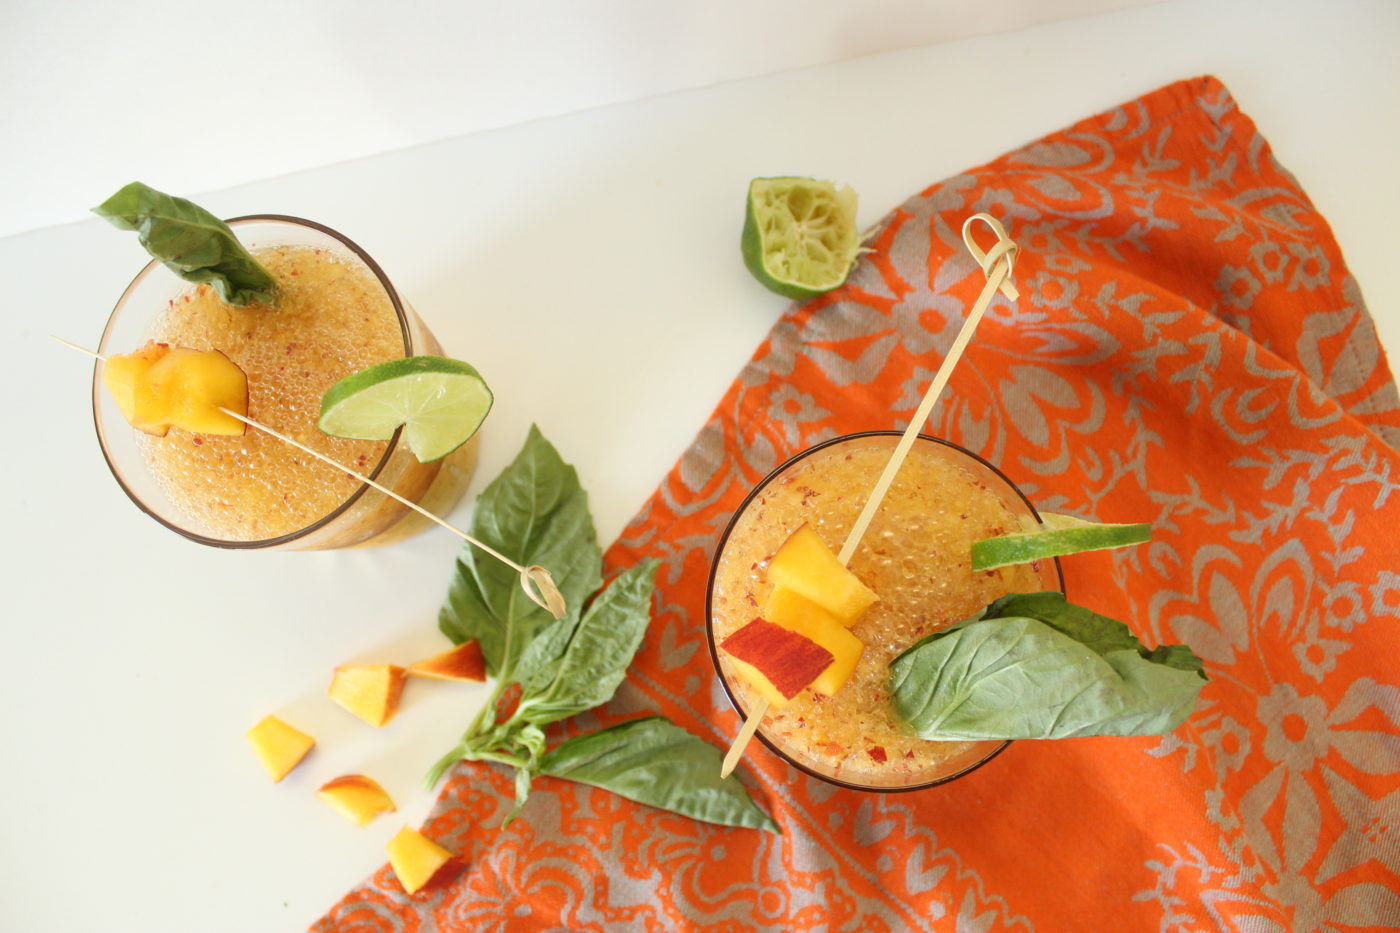 A frozen adult beverage on a warm day is one of the best treats. This frozen peach whiskey mule packs a punch.